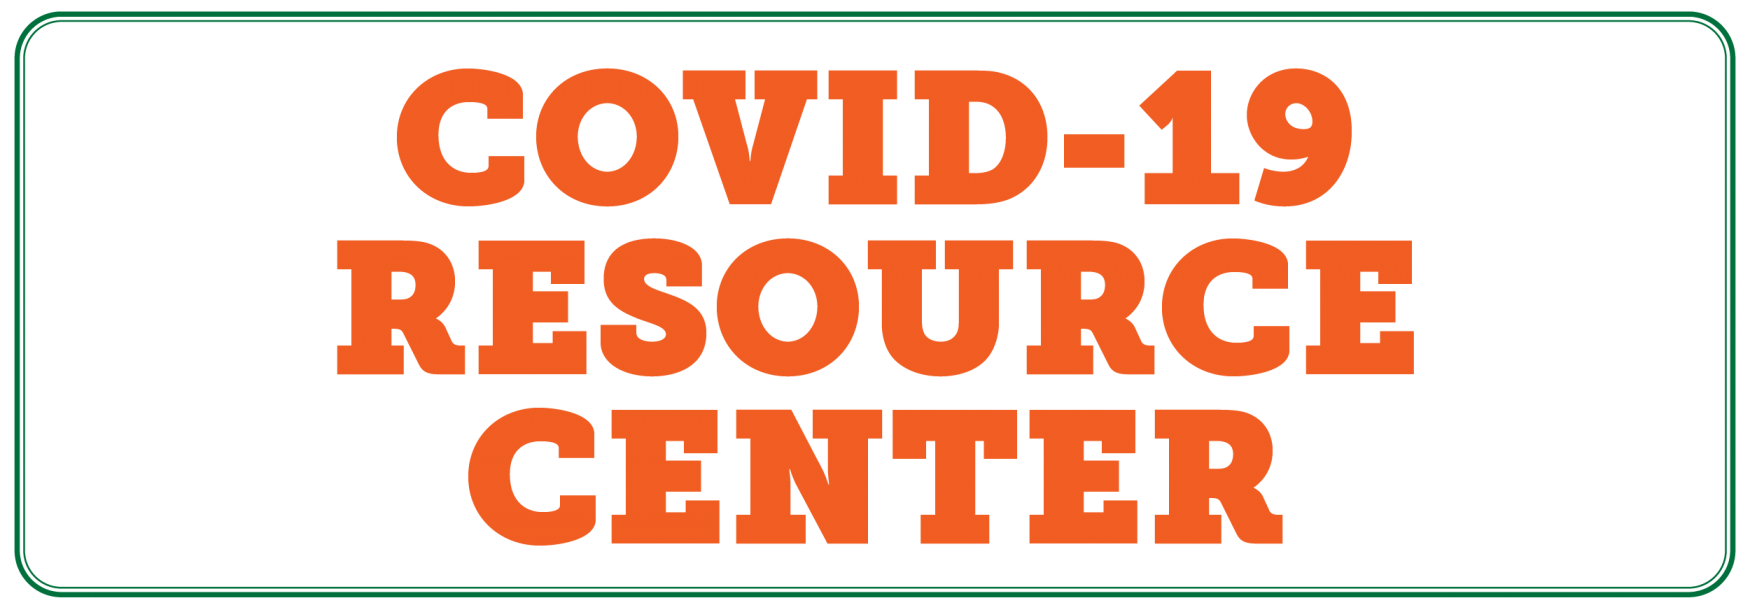 COVID Resource Center Banner Image.png